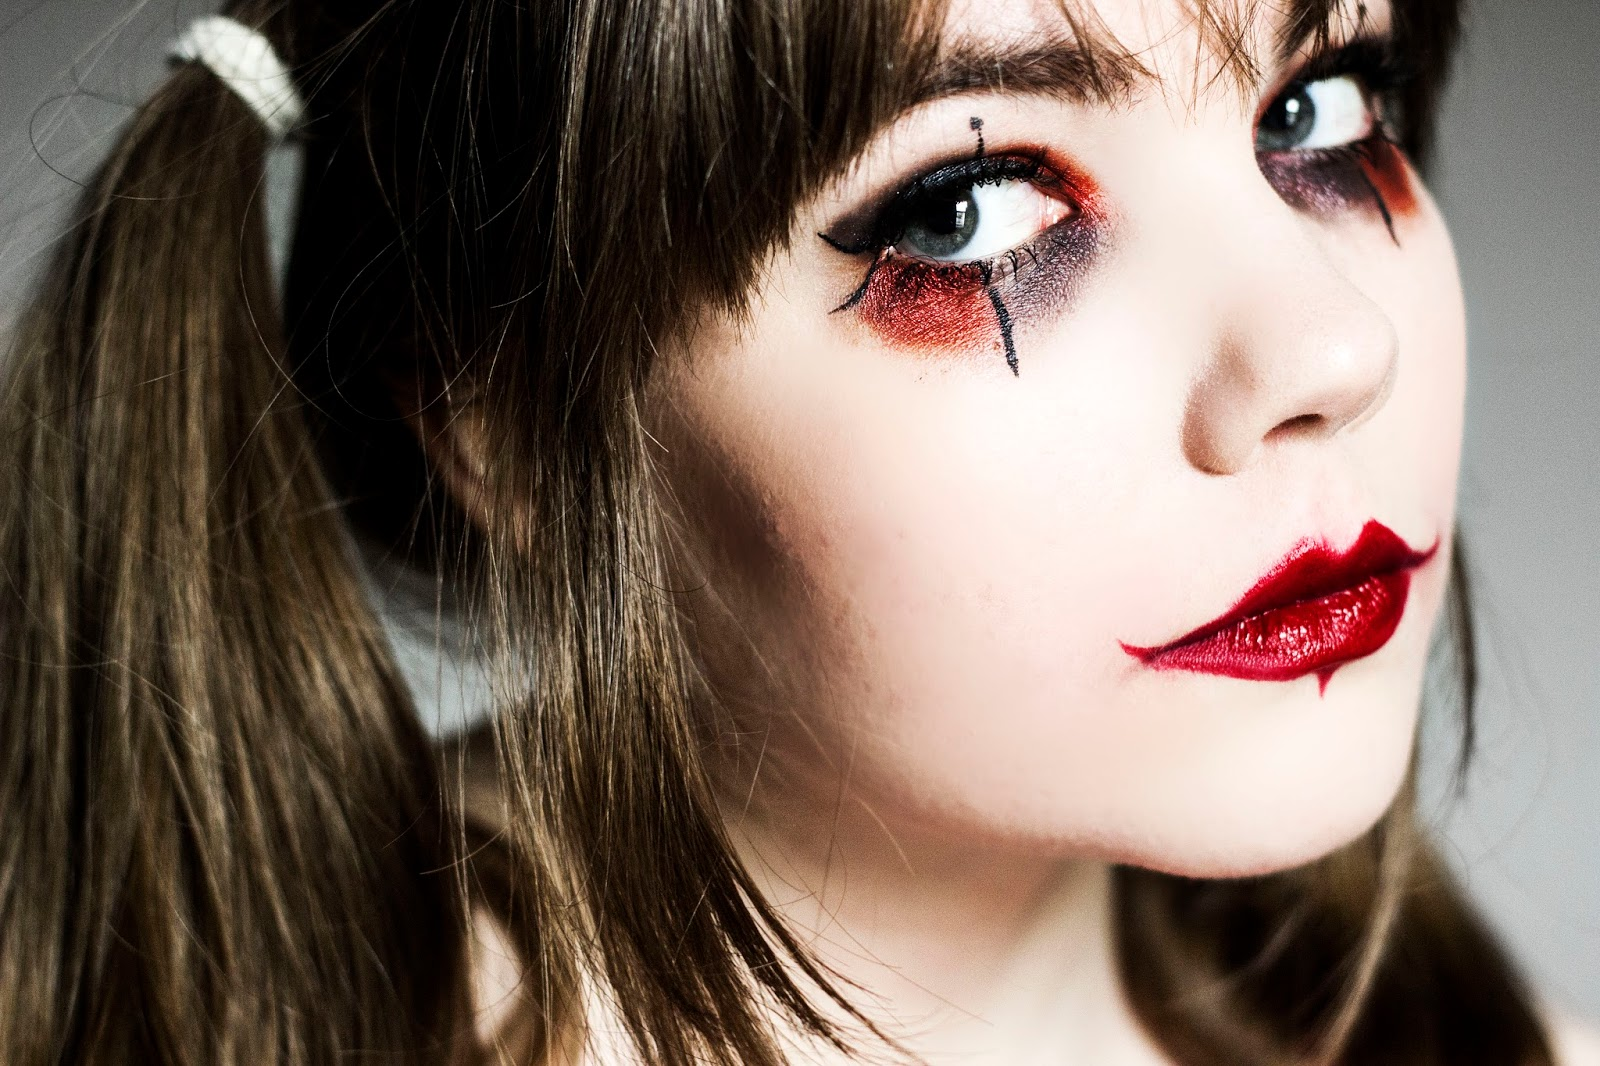 http://www.thewhimsicalwildling.com/2016/09/halloween-makeup-look-red-and-black_25.html